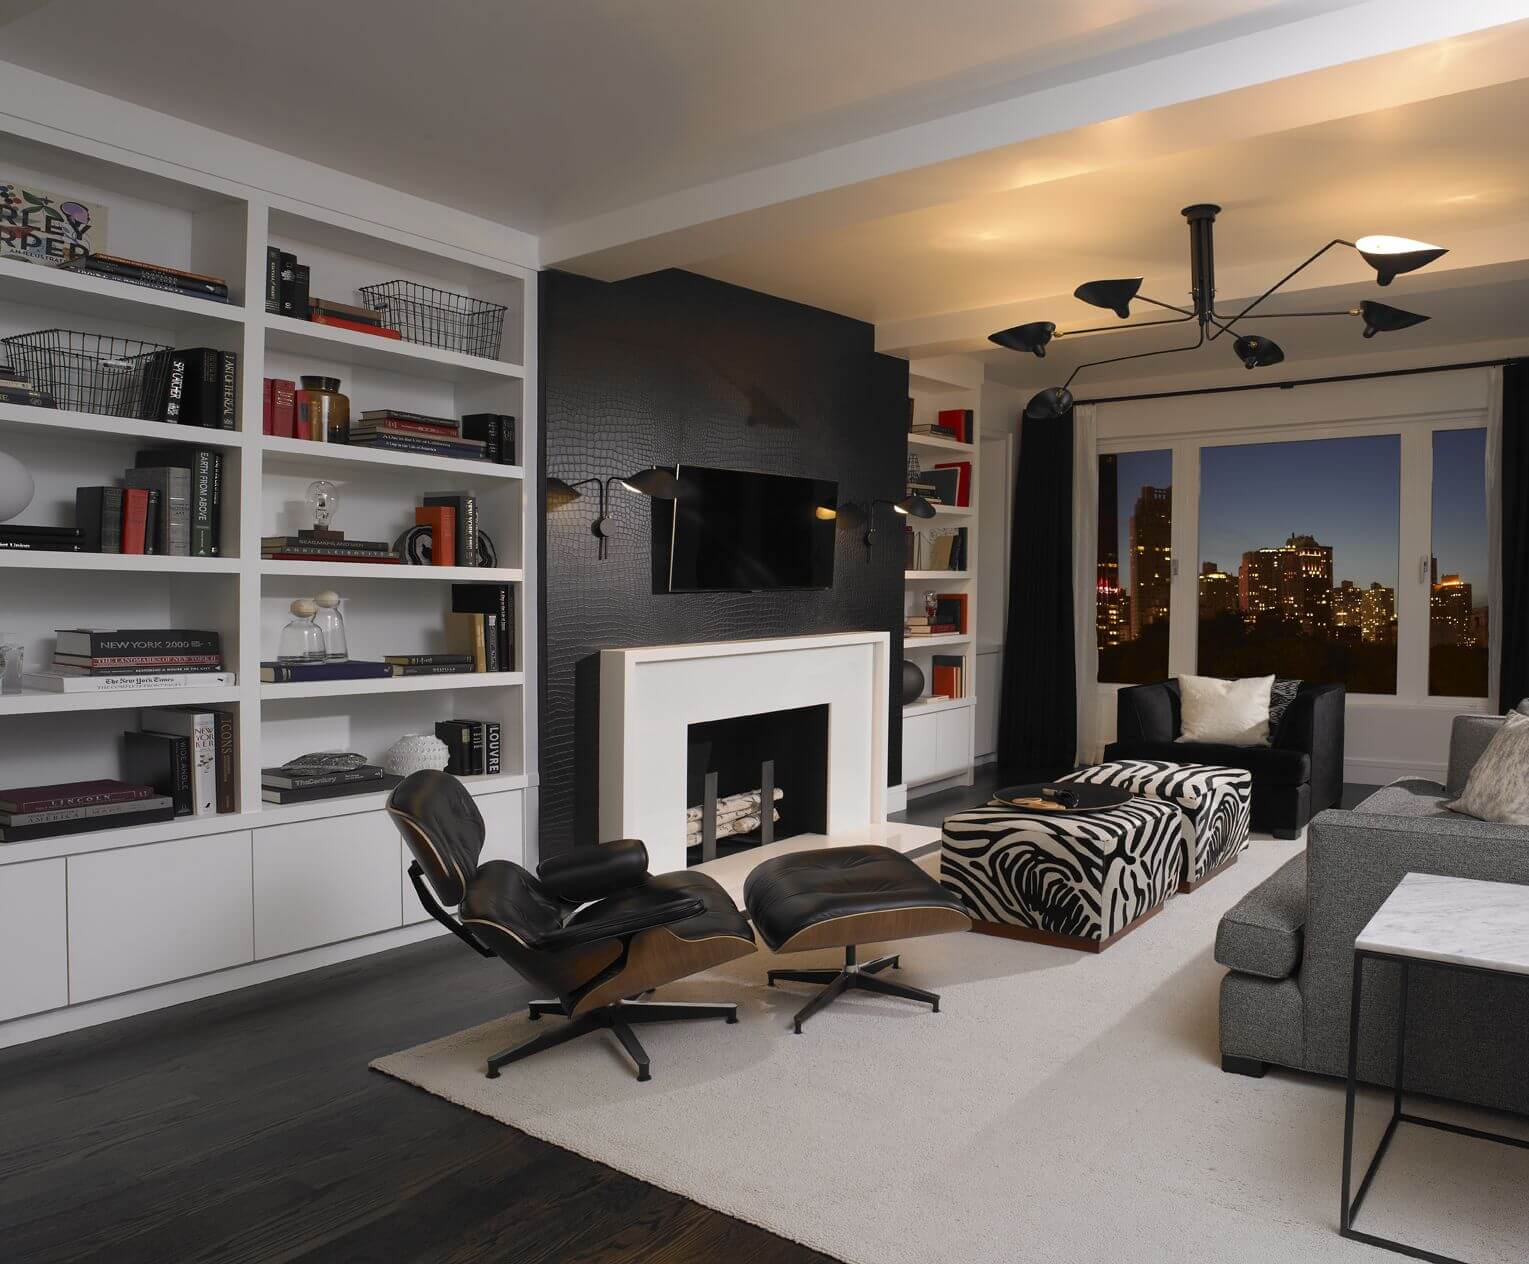 Amazing Casual Living Room In A Condo Incorporating Zebra Print With 2 Zebra  Ottomans, Both Of